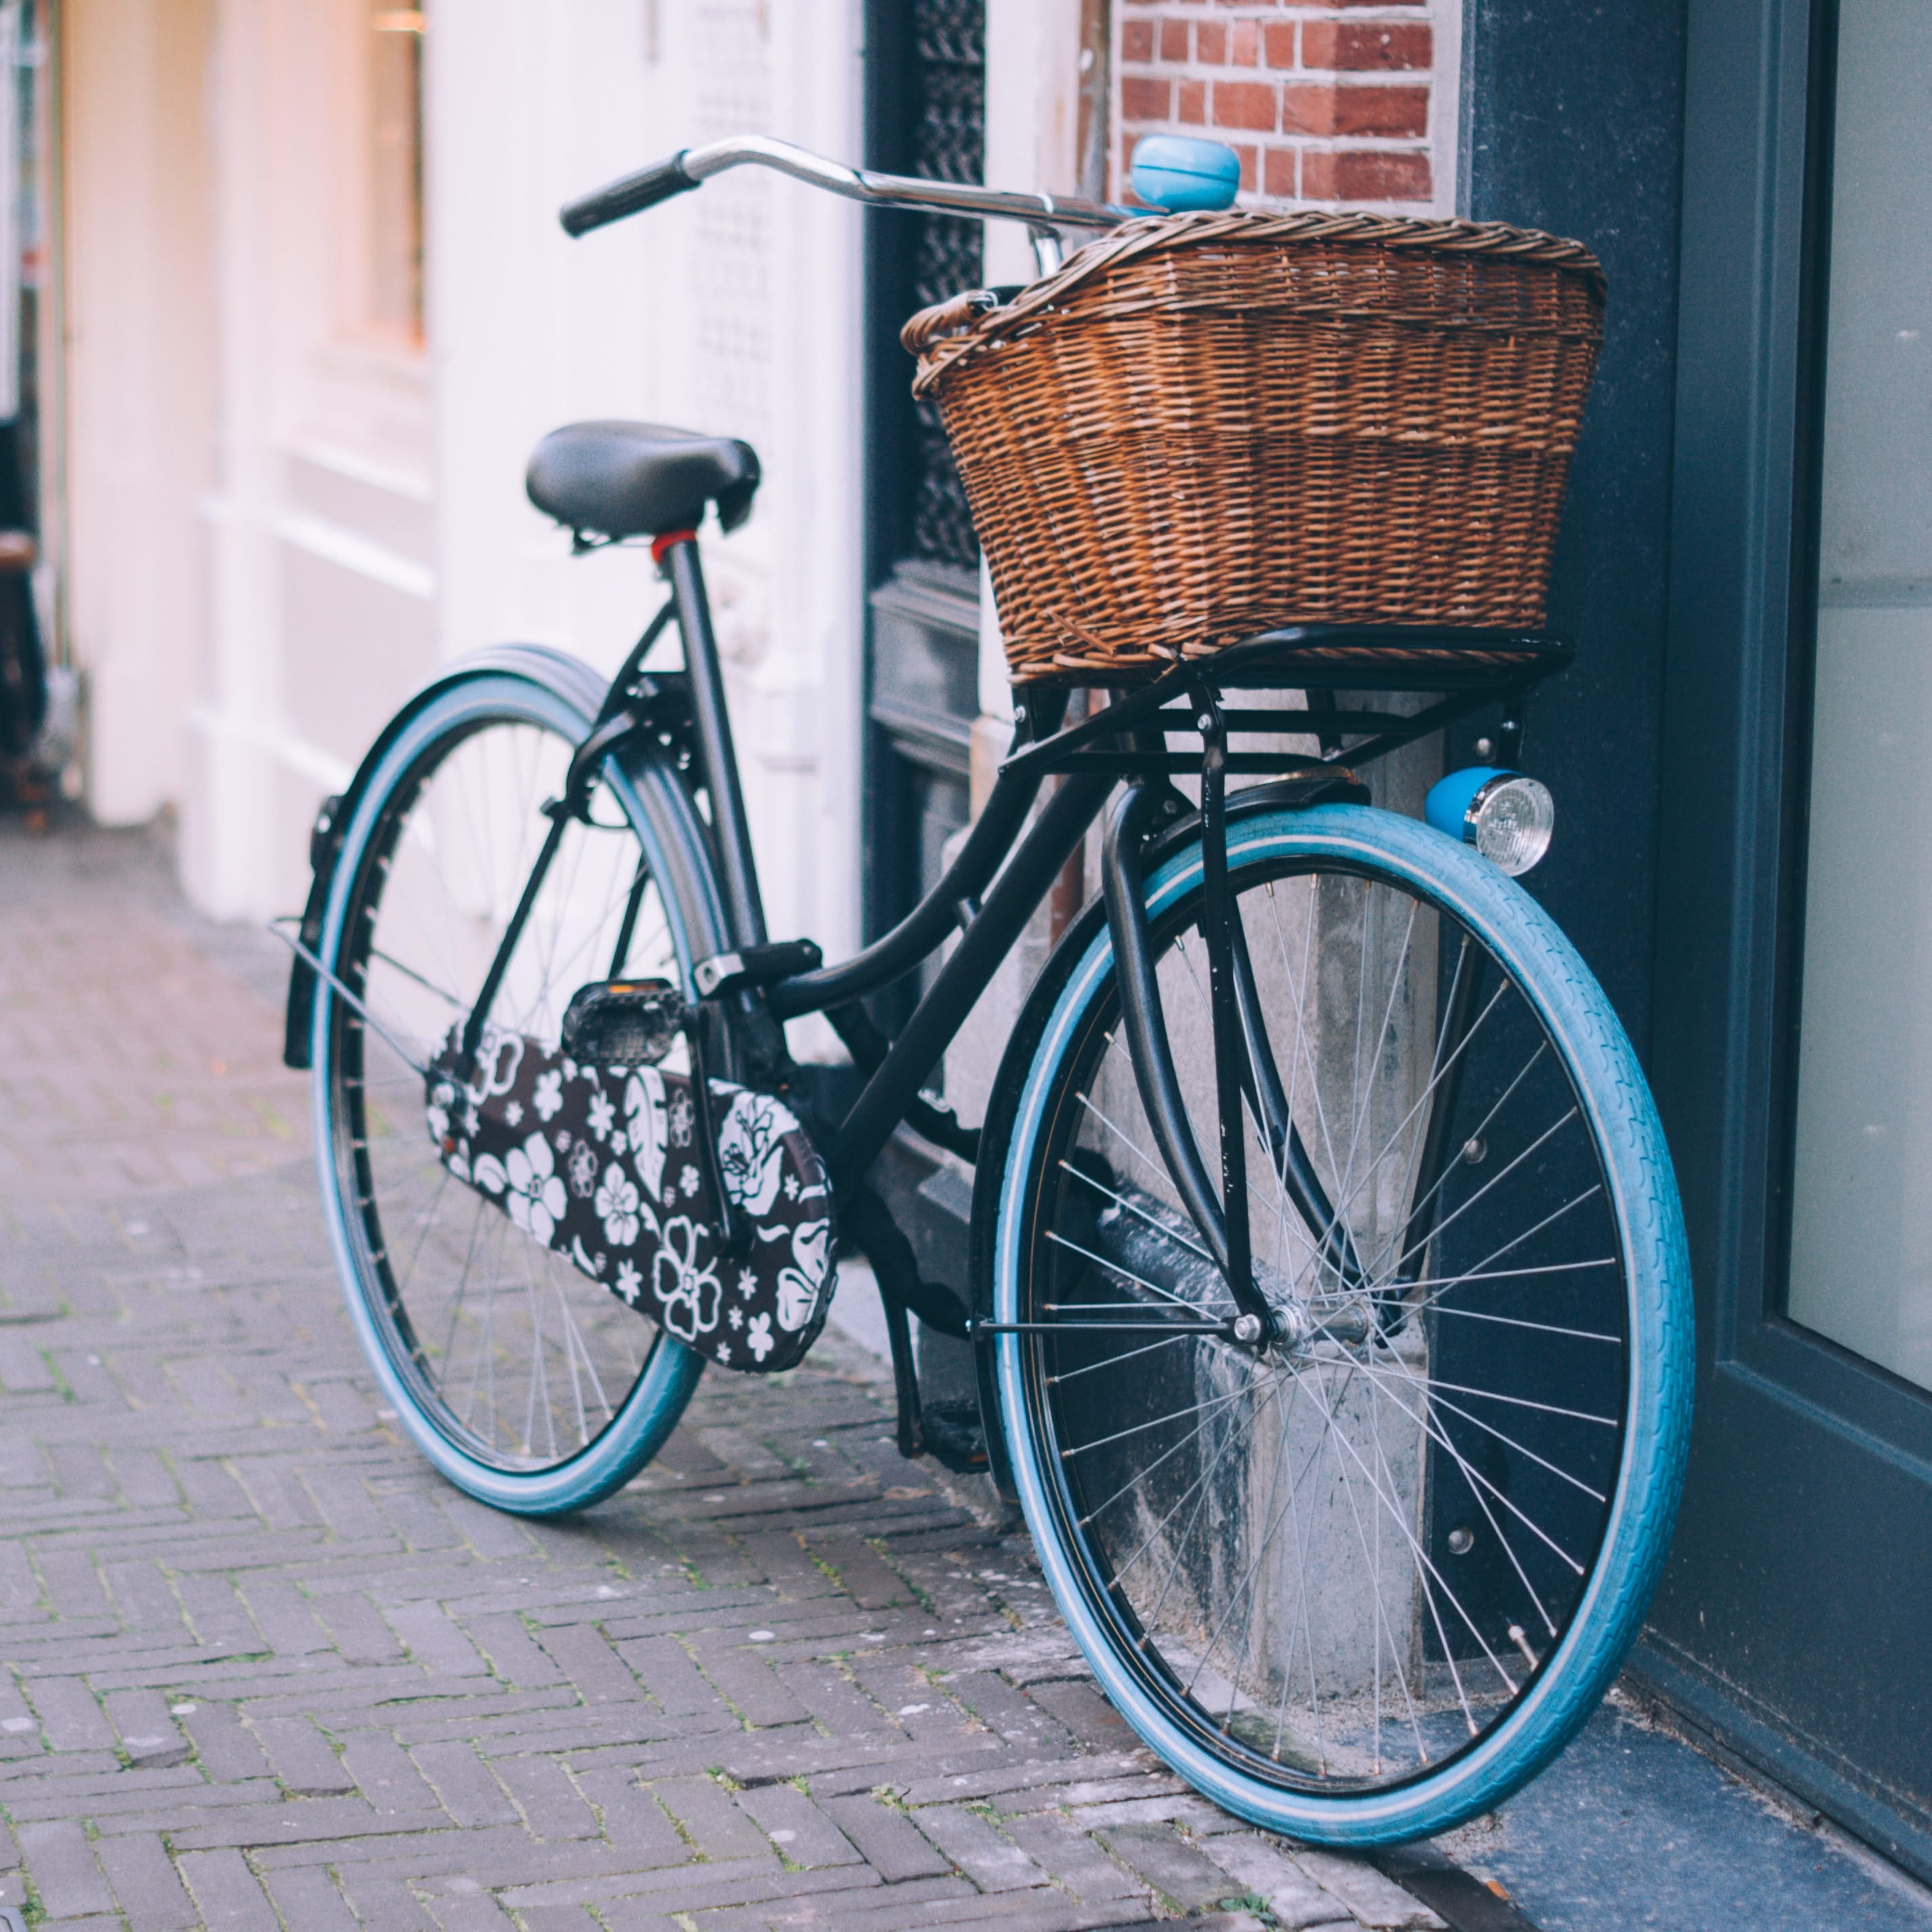 Six truths Expat websites don't tell you about living in the Netherlands